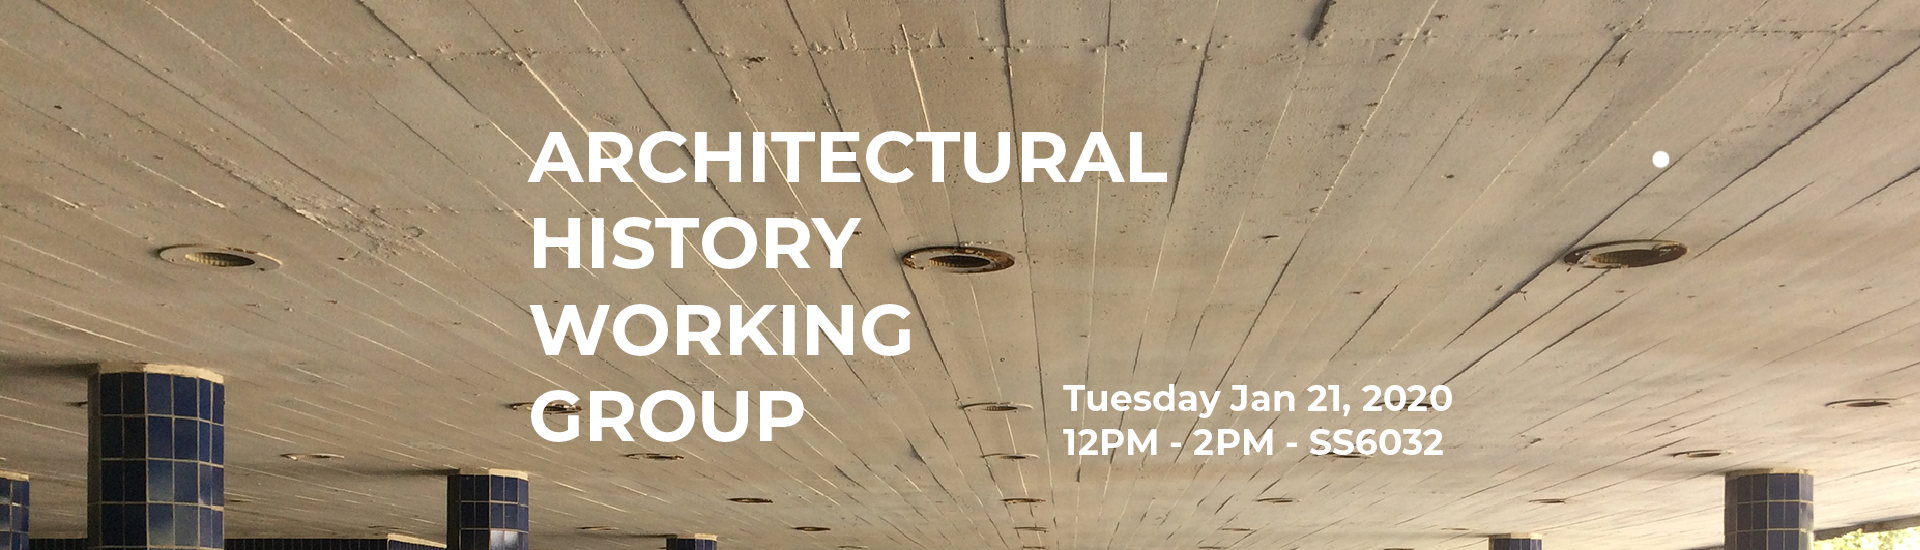 Architectural History Working Group Jan 21 2020 SS6032 12pm